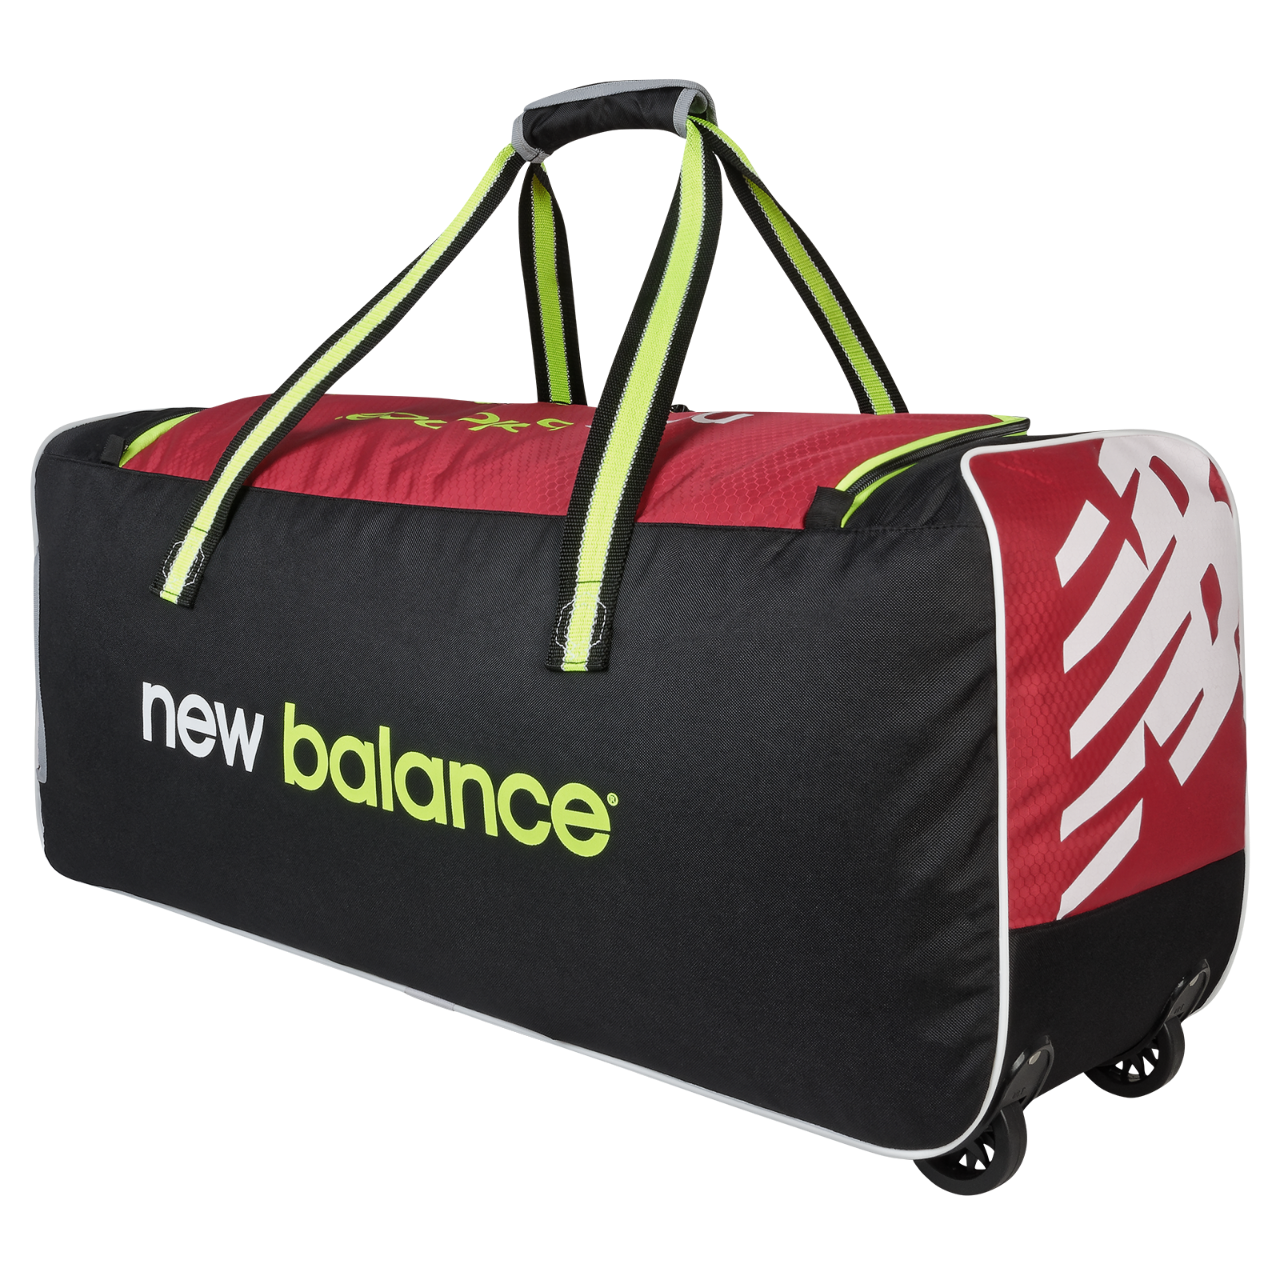 2021 New Balance TC 560 Wheelie Cricket Bag